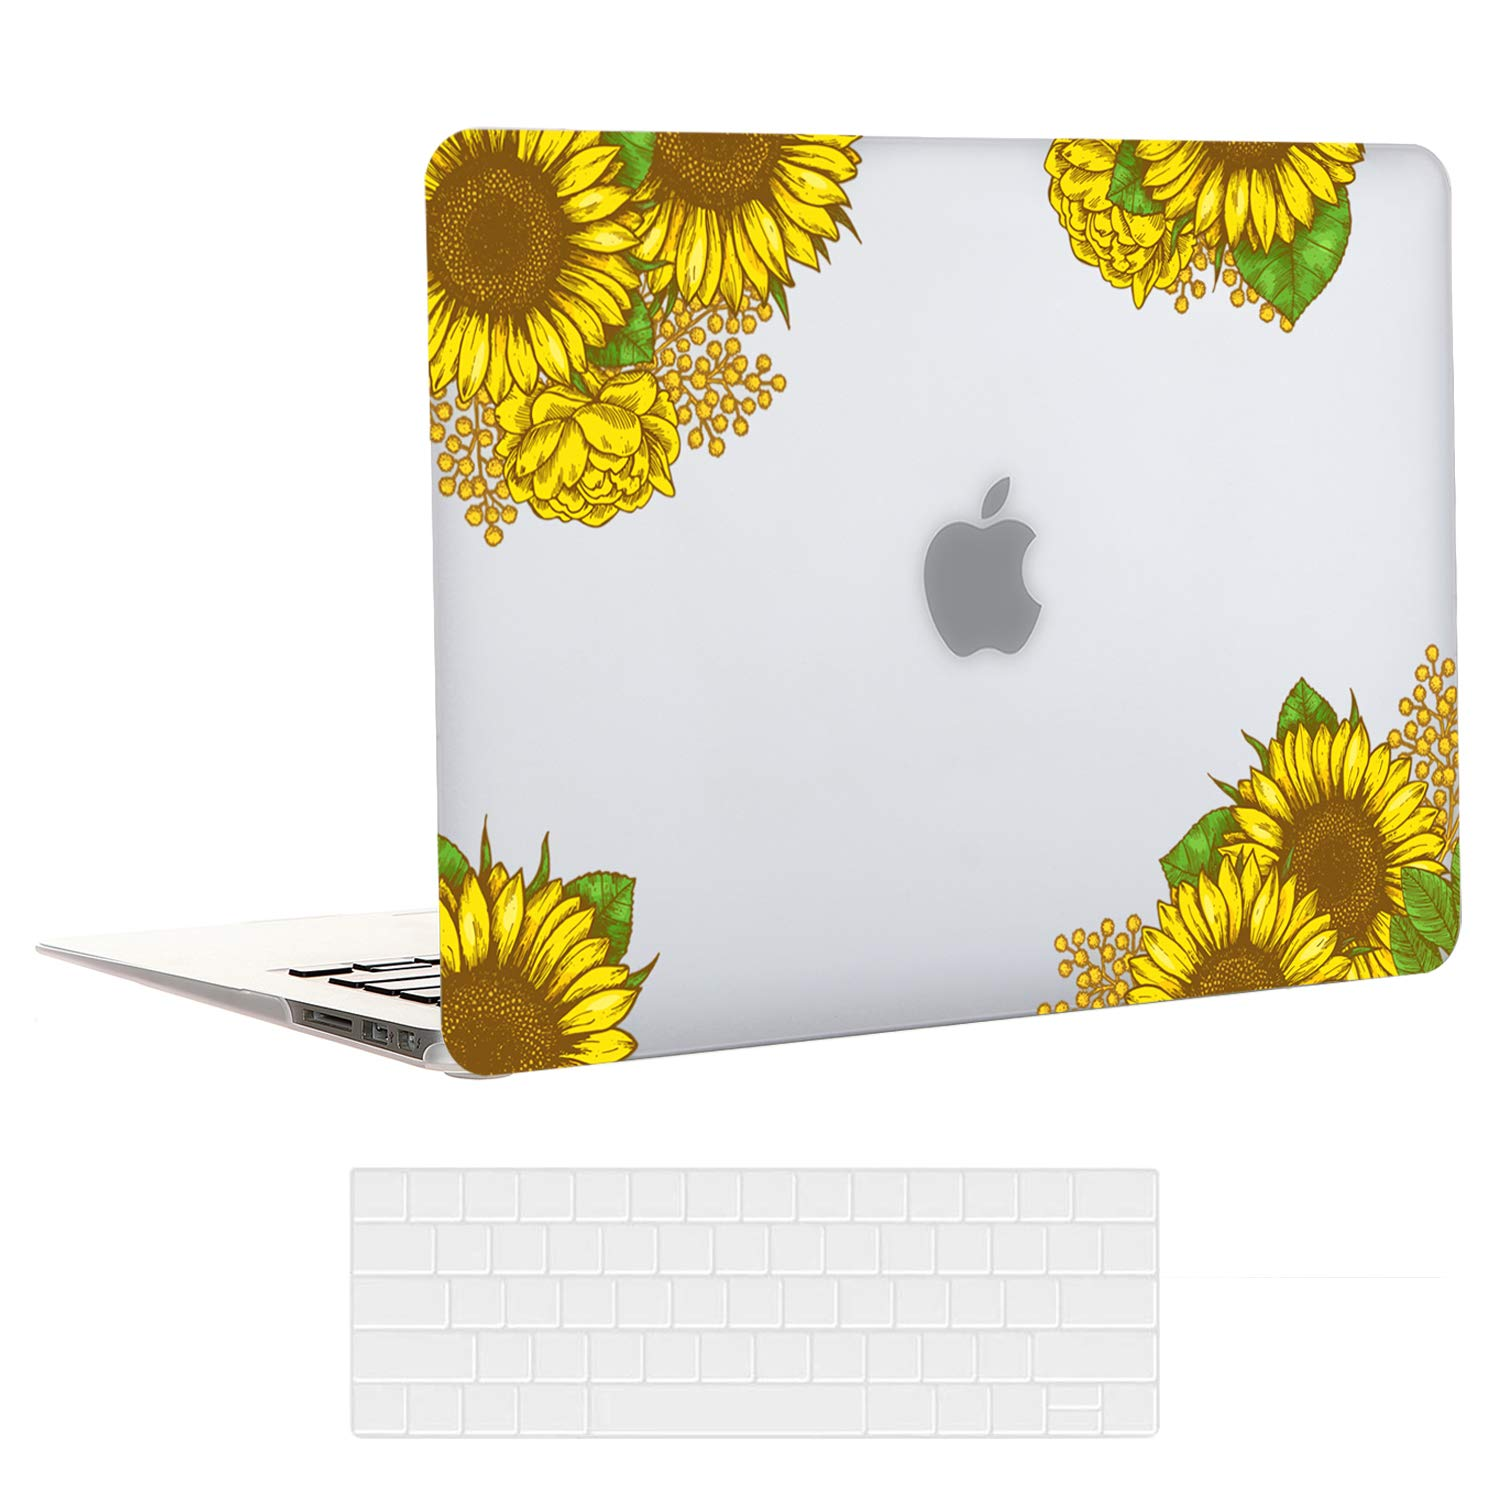 EkuaBot Sunflower MacBook Air 13 inch Case & Transparent Keyboard Cover (A1932, 2018-2019 Release), Matt Clear Rubber Coated Hard Case Only Compatible New MacBook Air 13.3 Retina Display & Touch ID